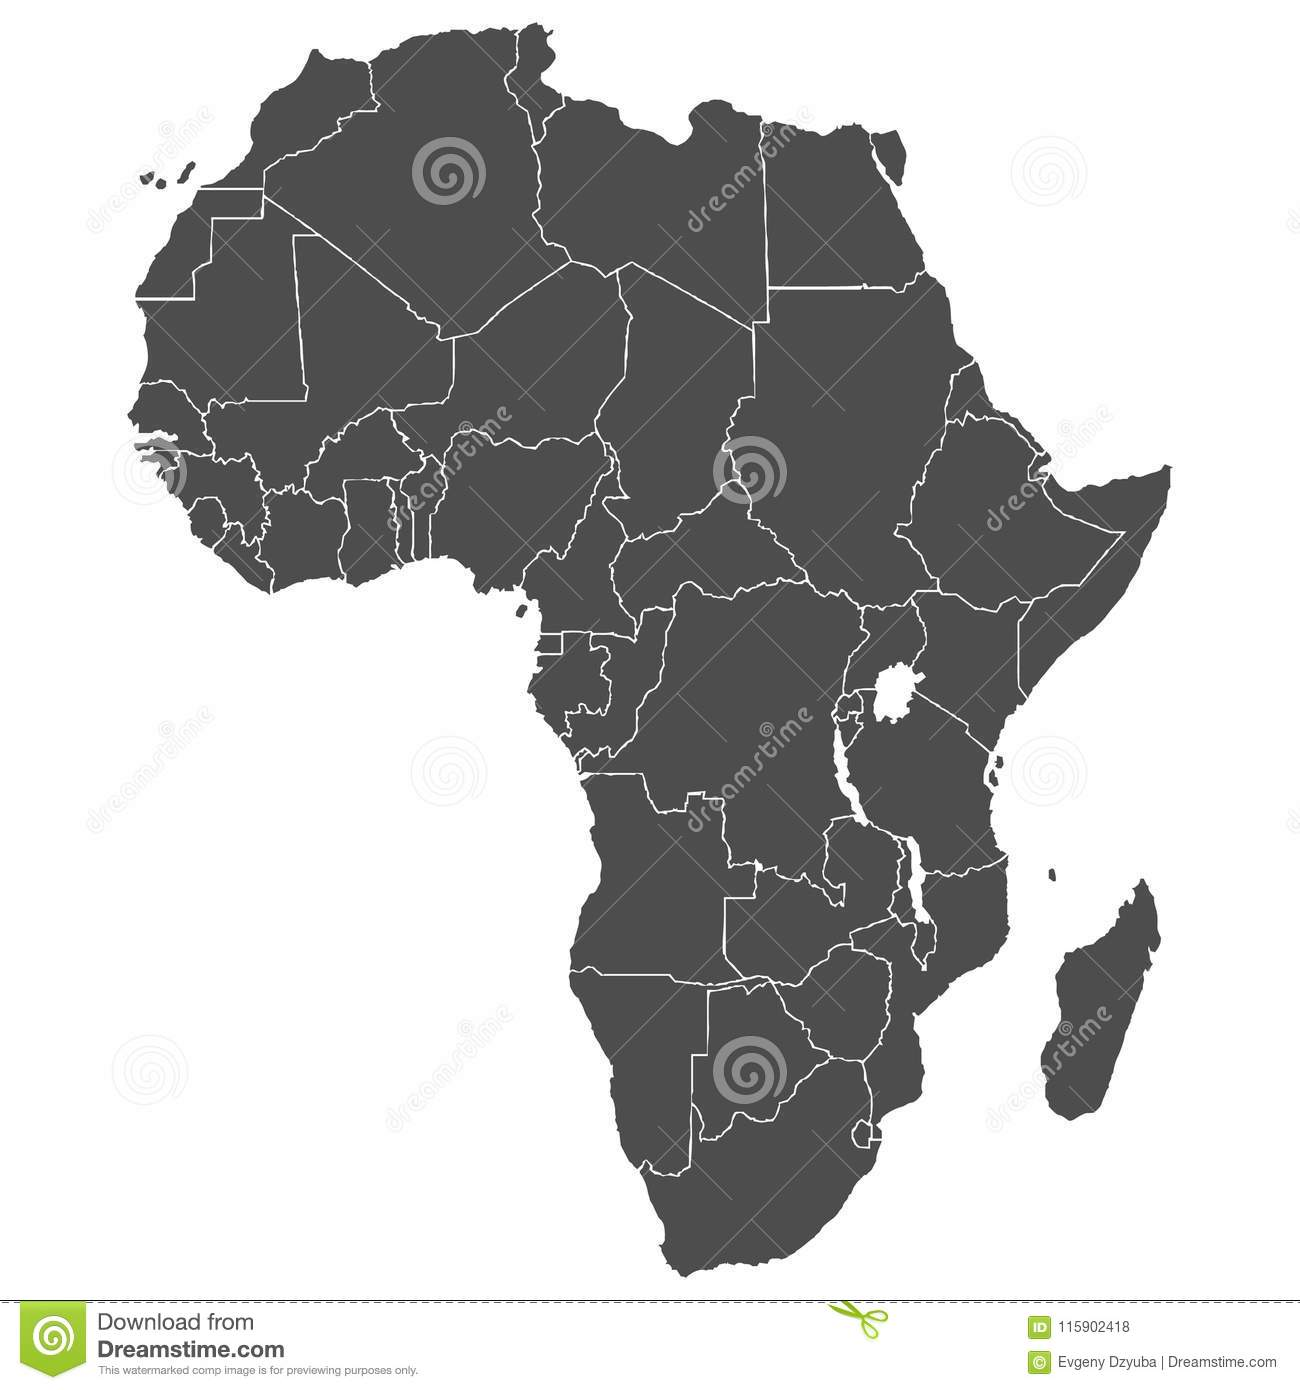 Accurate Map Of Africa.Map Of The African Continent Stock Vector Illustration Of East